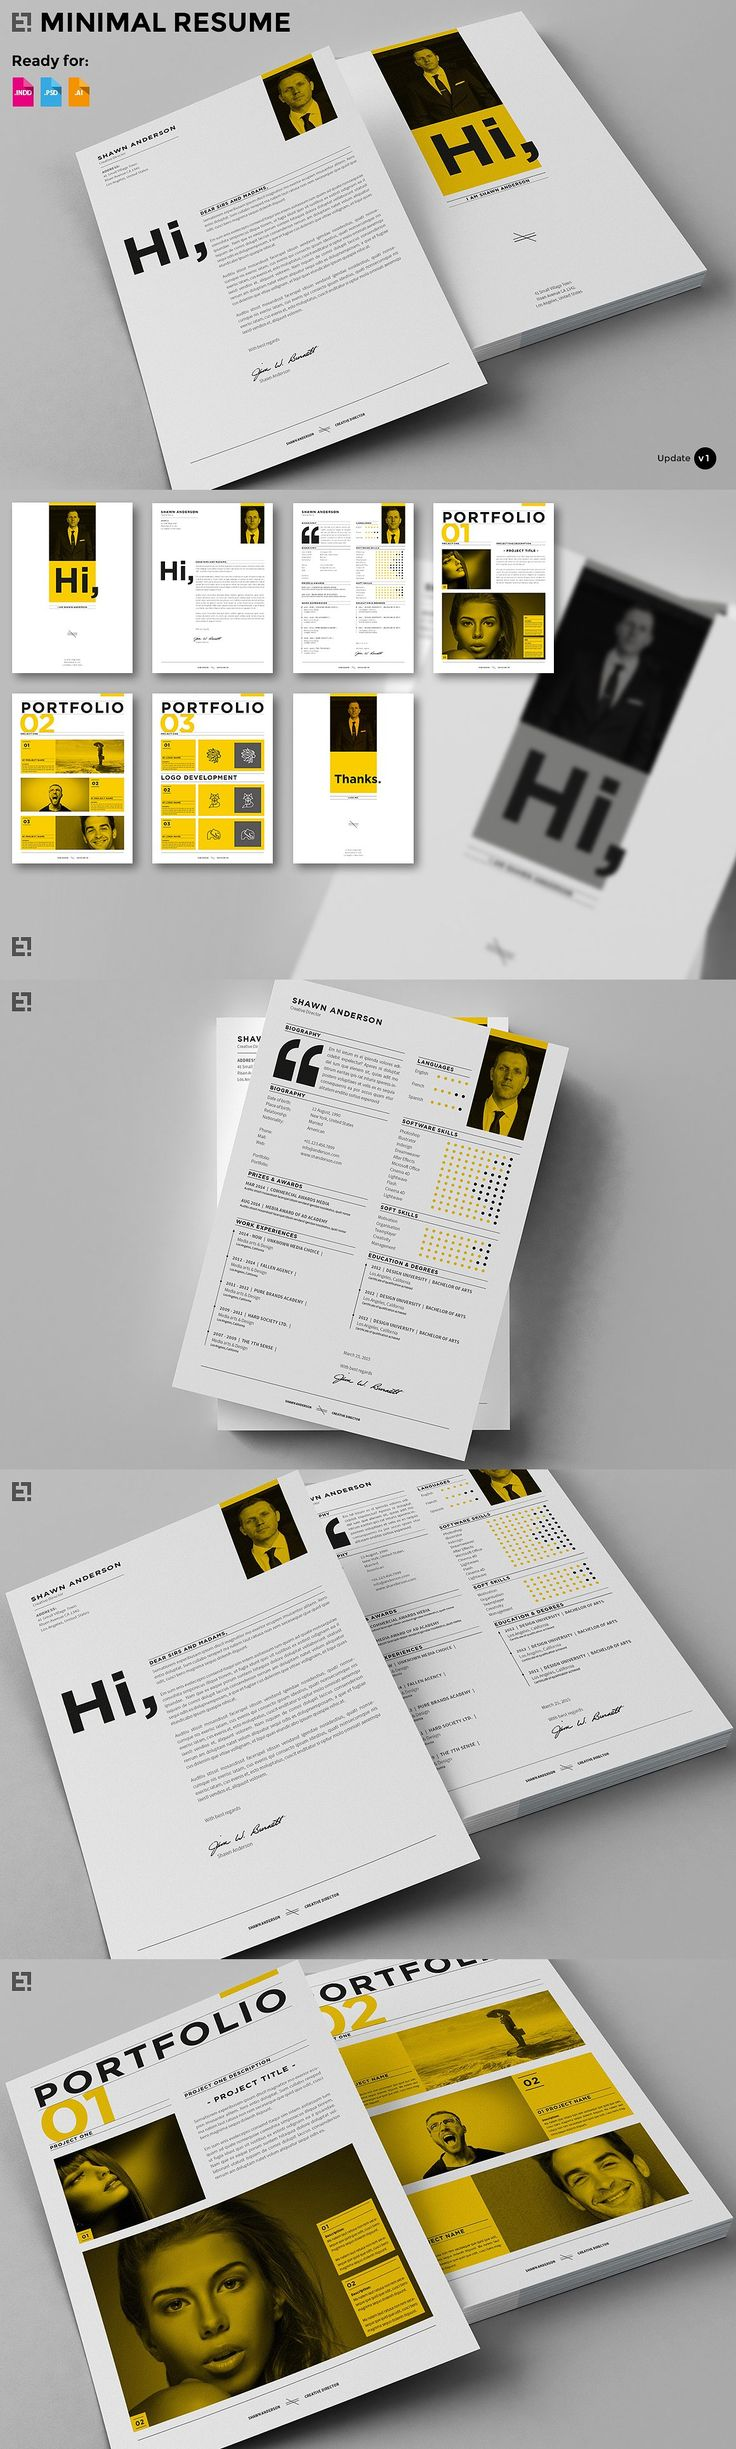 profile in a resume%0A Make your resume and job application stand out with this bold graphic  template featuring unique typography